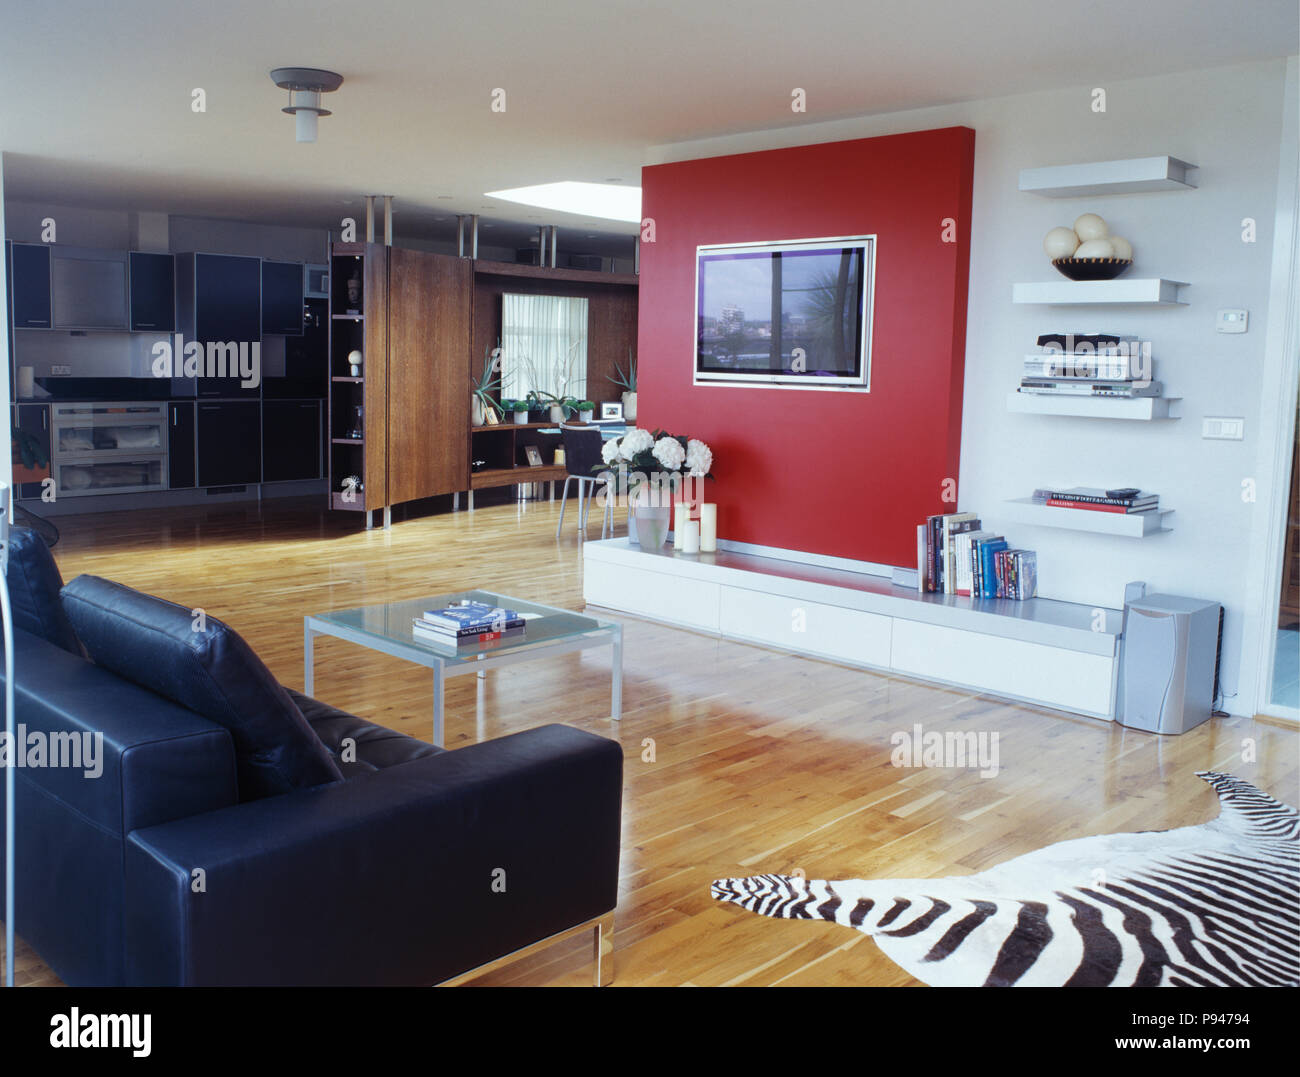 Black leather sofa and wooden flooring in large open-plan ...